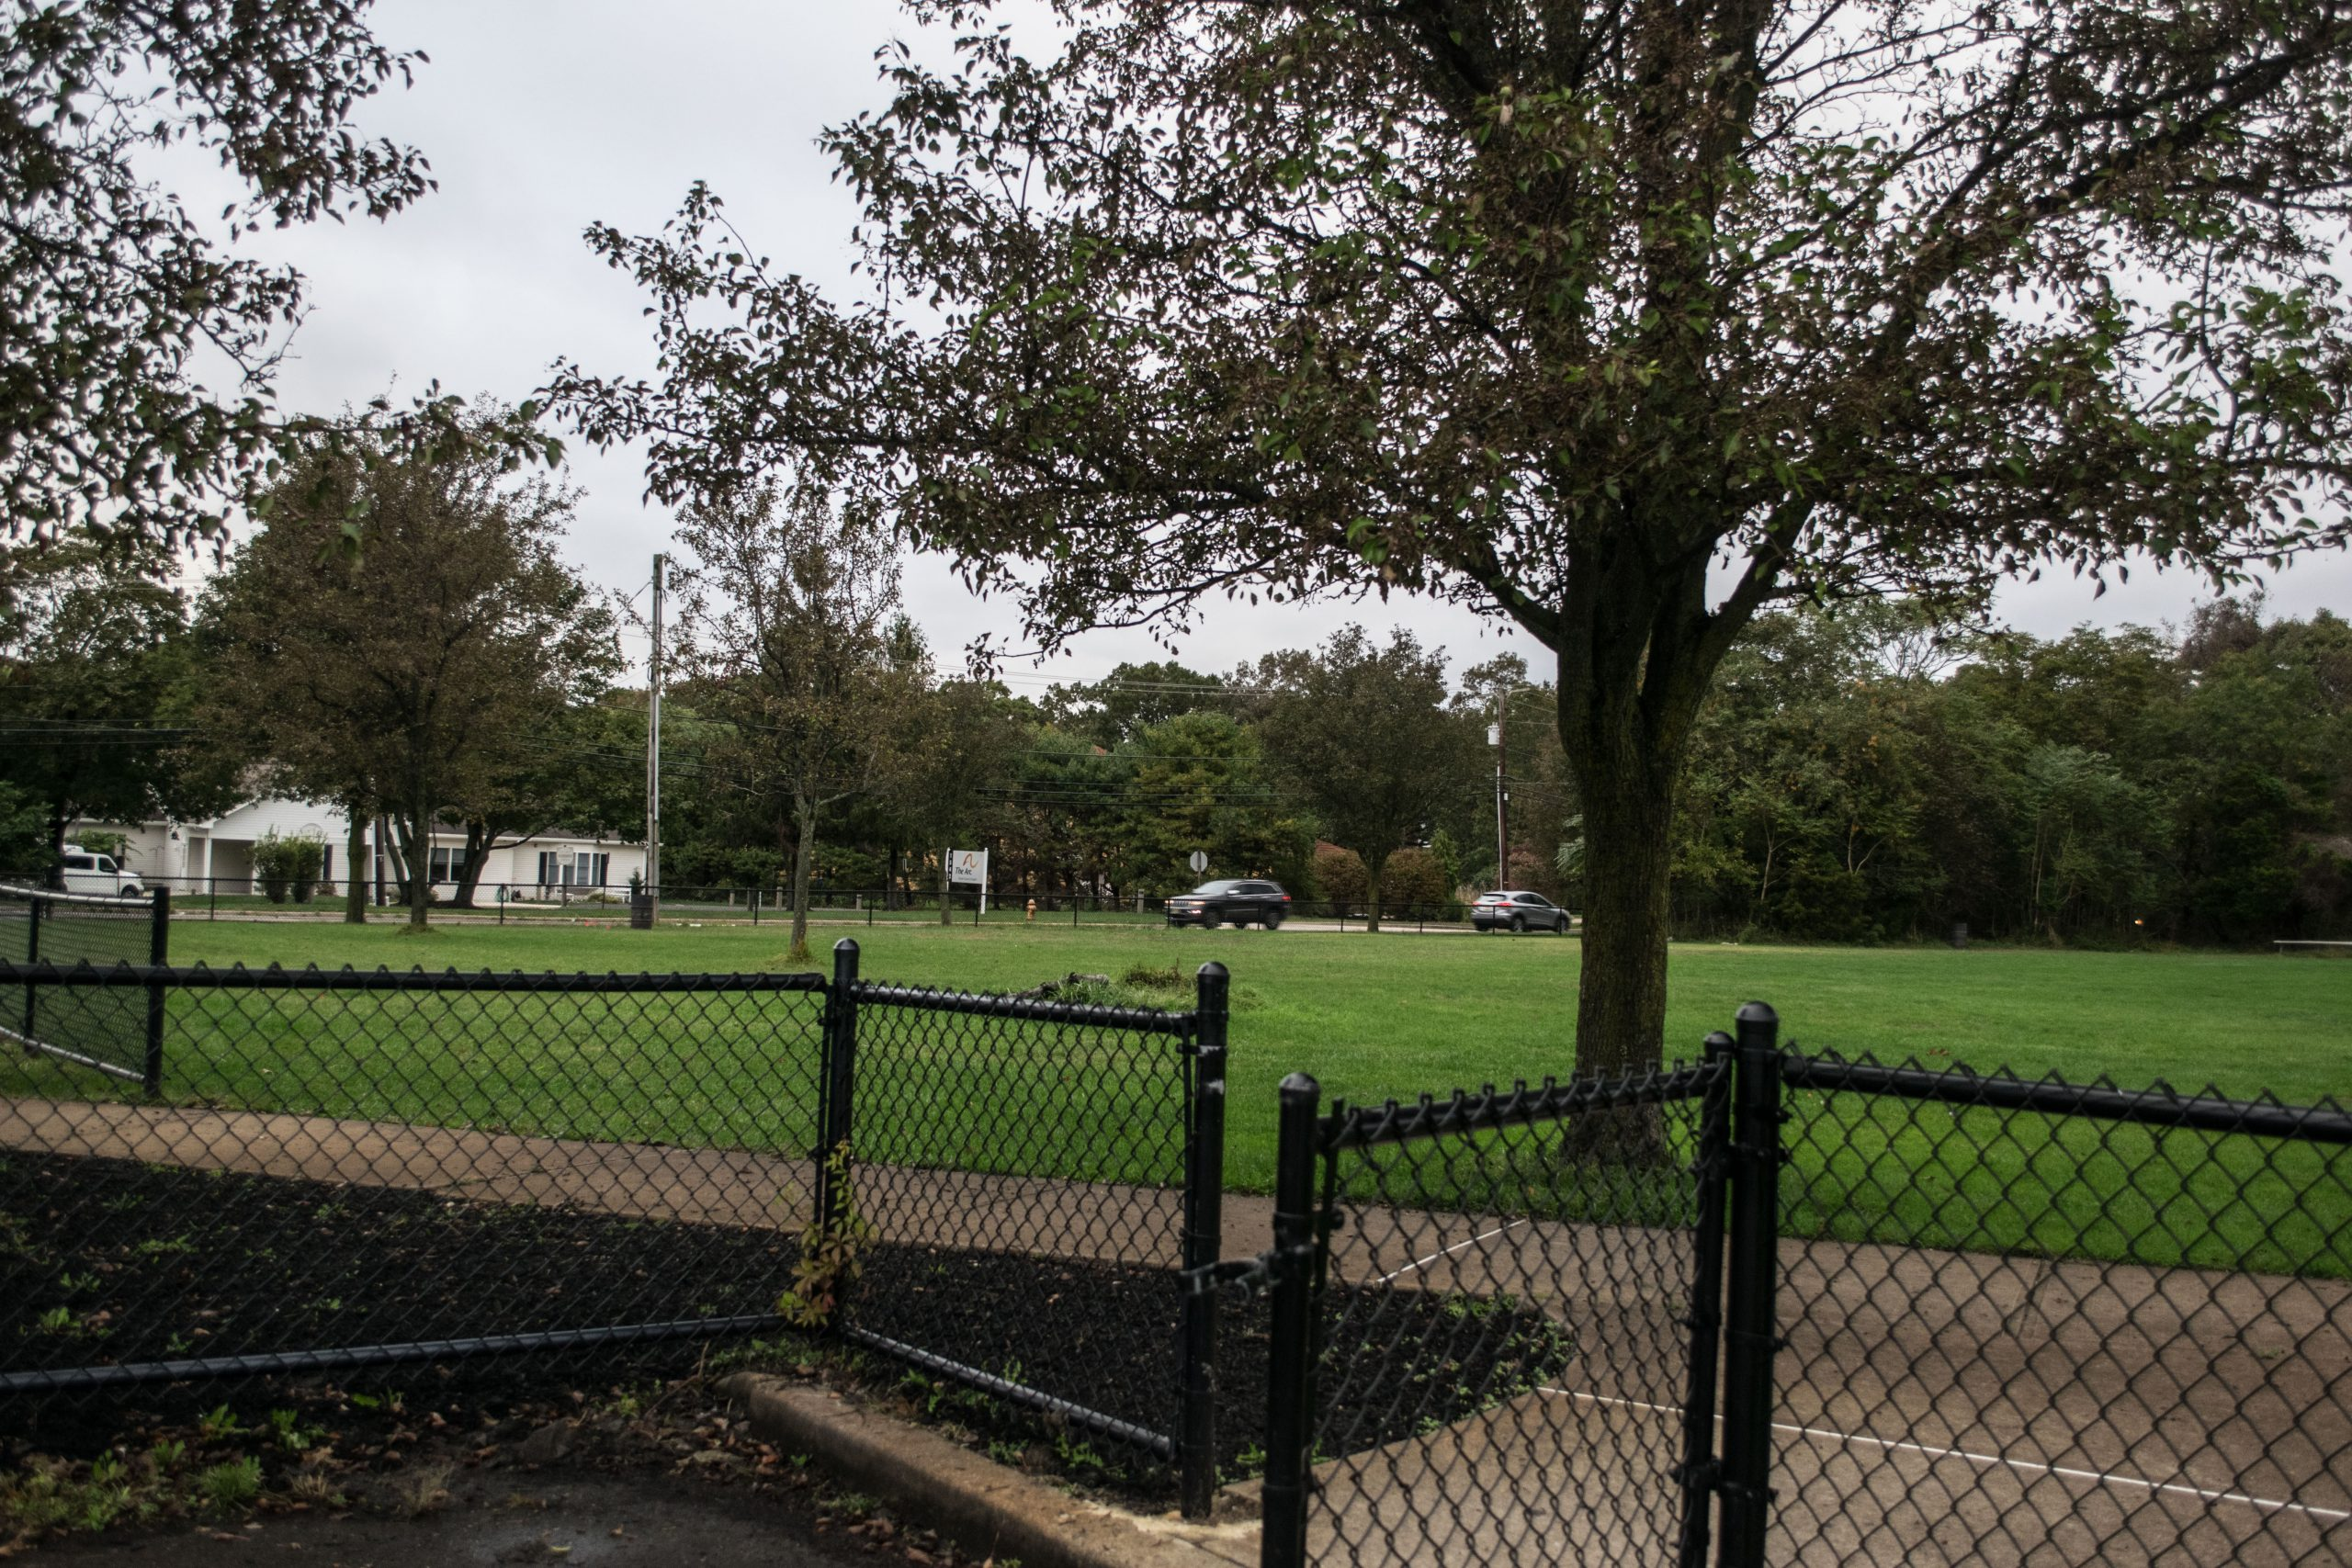 The area of Castle Park where a skate park is being planned in Toms River. (Photo: Daniel Nee)